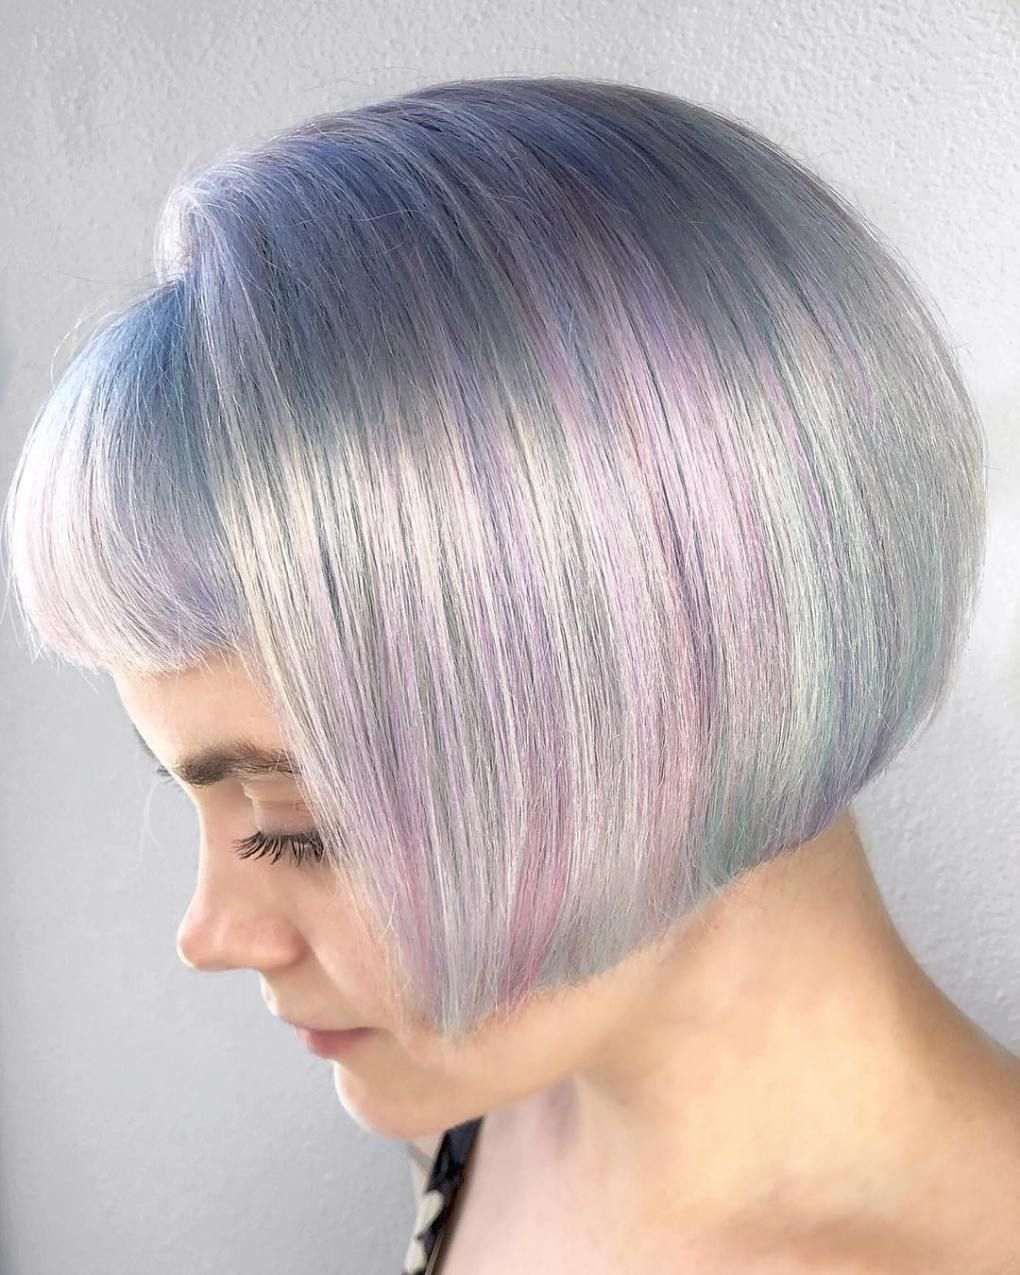 Holographic hair takes the art of selfexpression over the rainbow